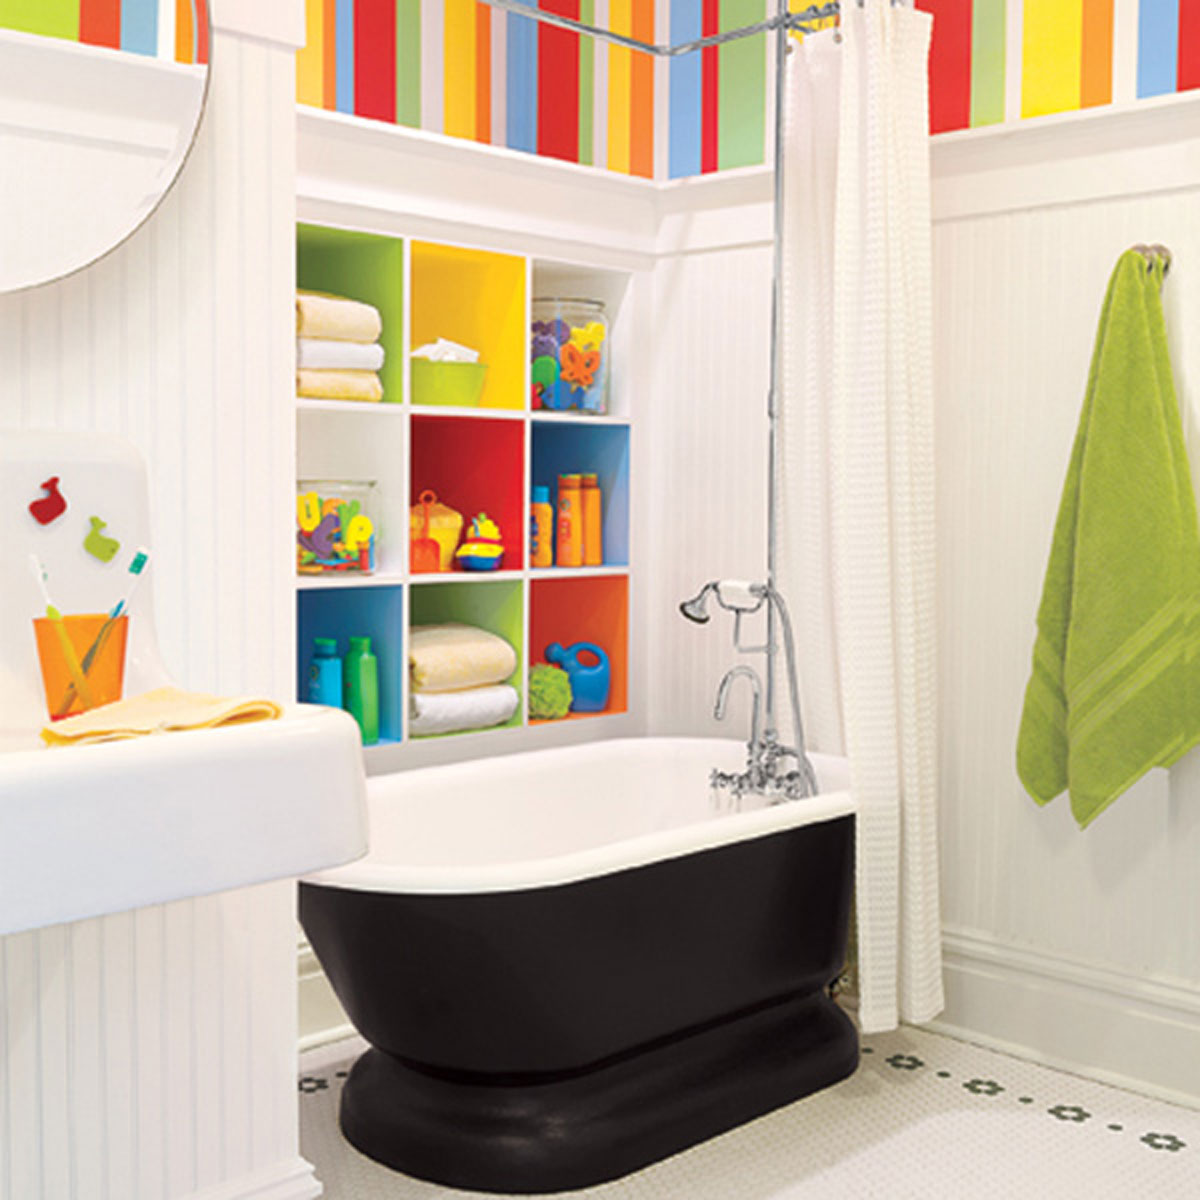 15 New And Unique Kids Bathroom Ideas